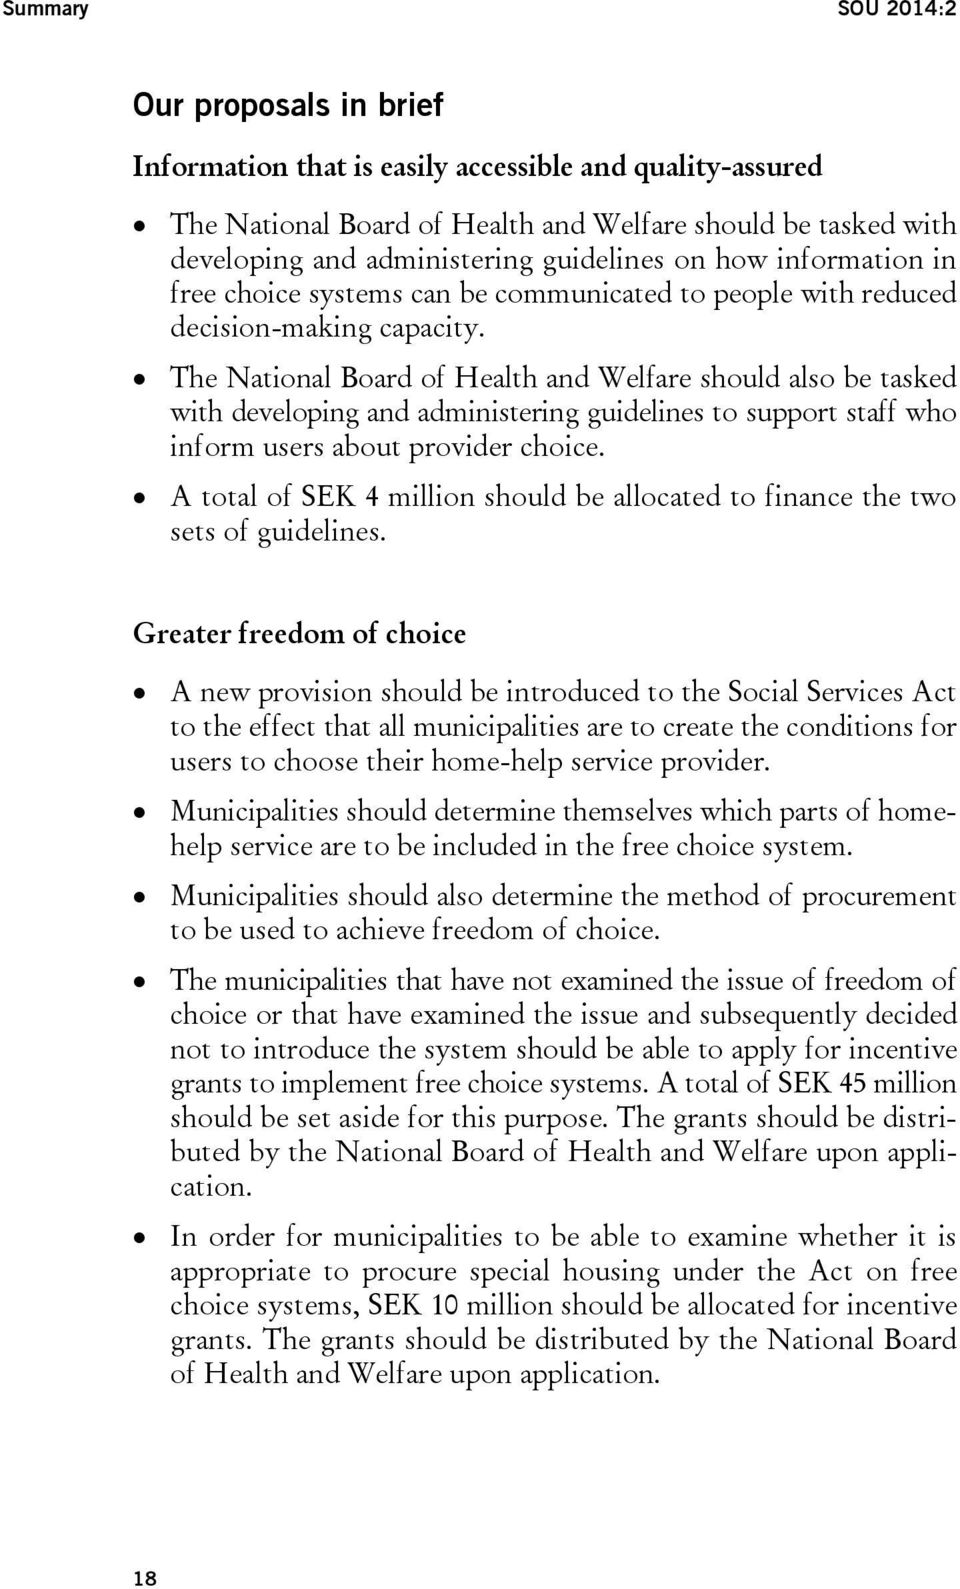 The National Board of Health and Welfare should also be tasked with developing and administering guidelines to support staff who inform users about provider choice.